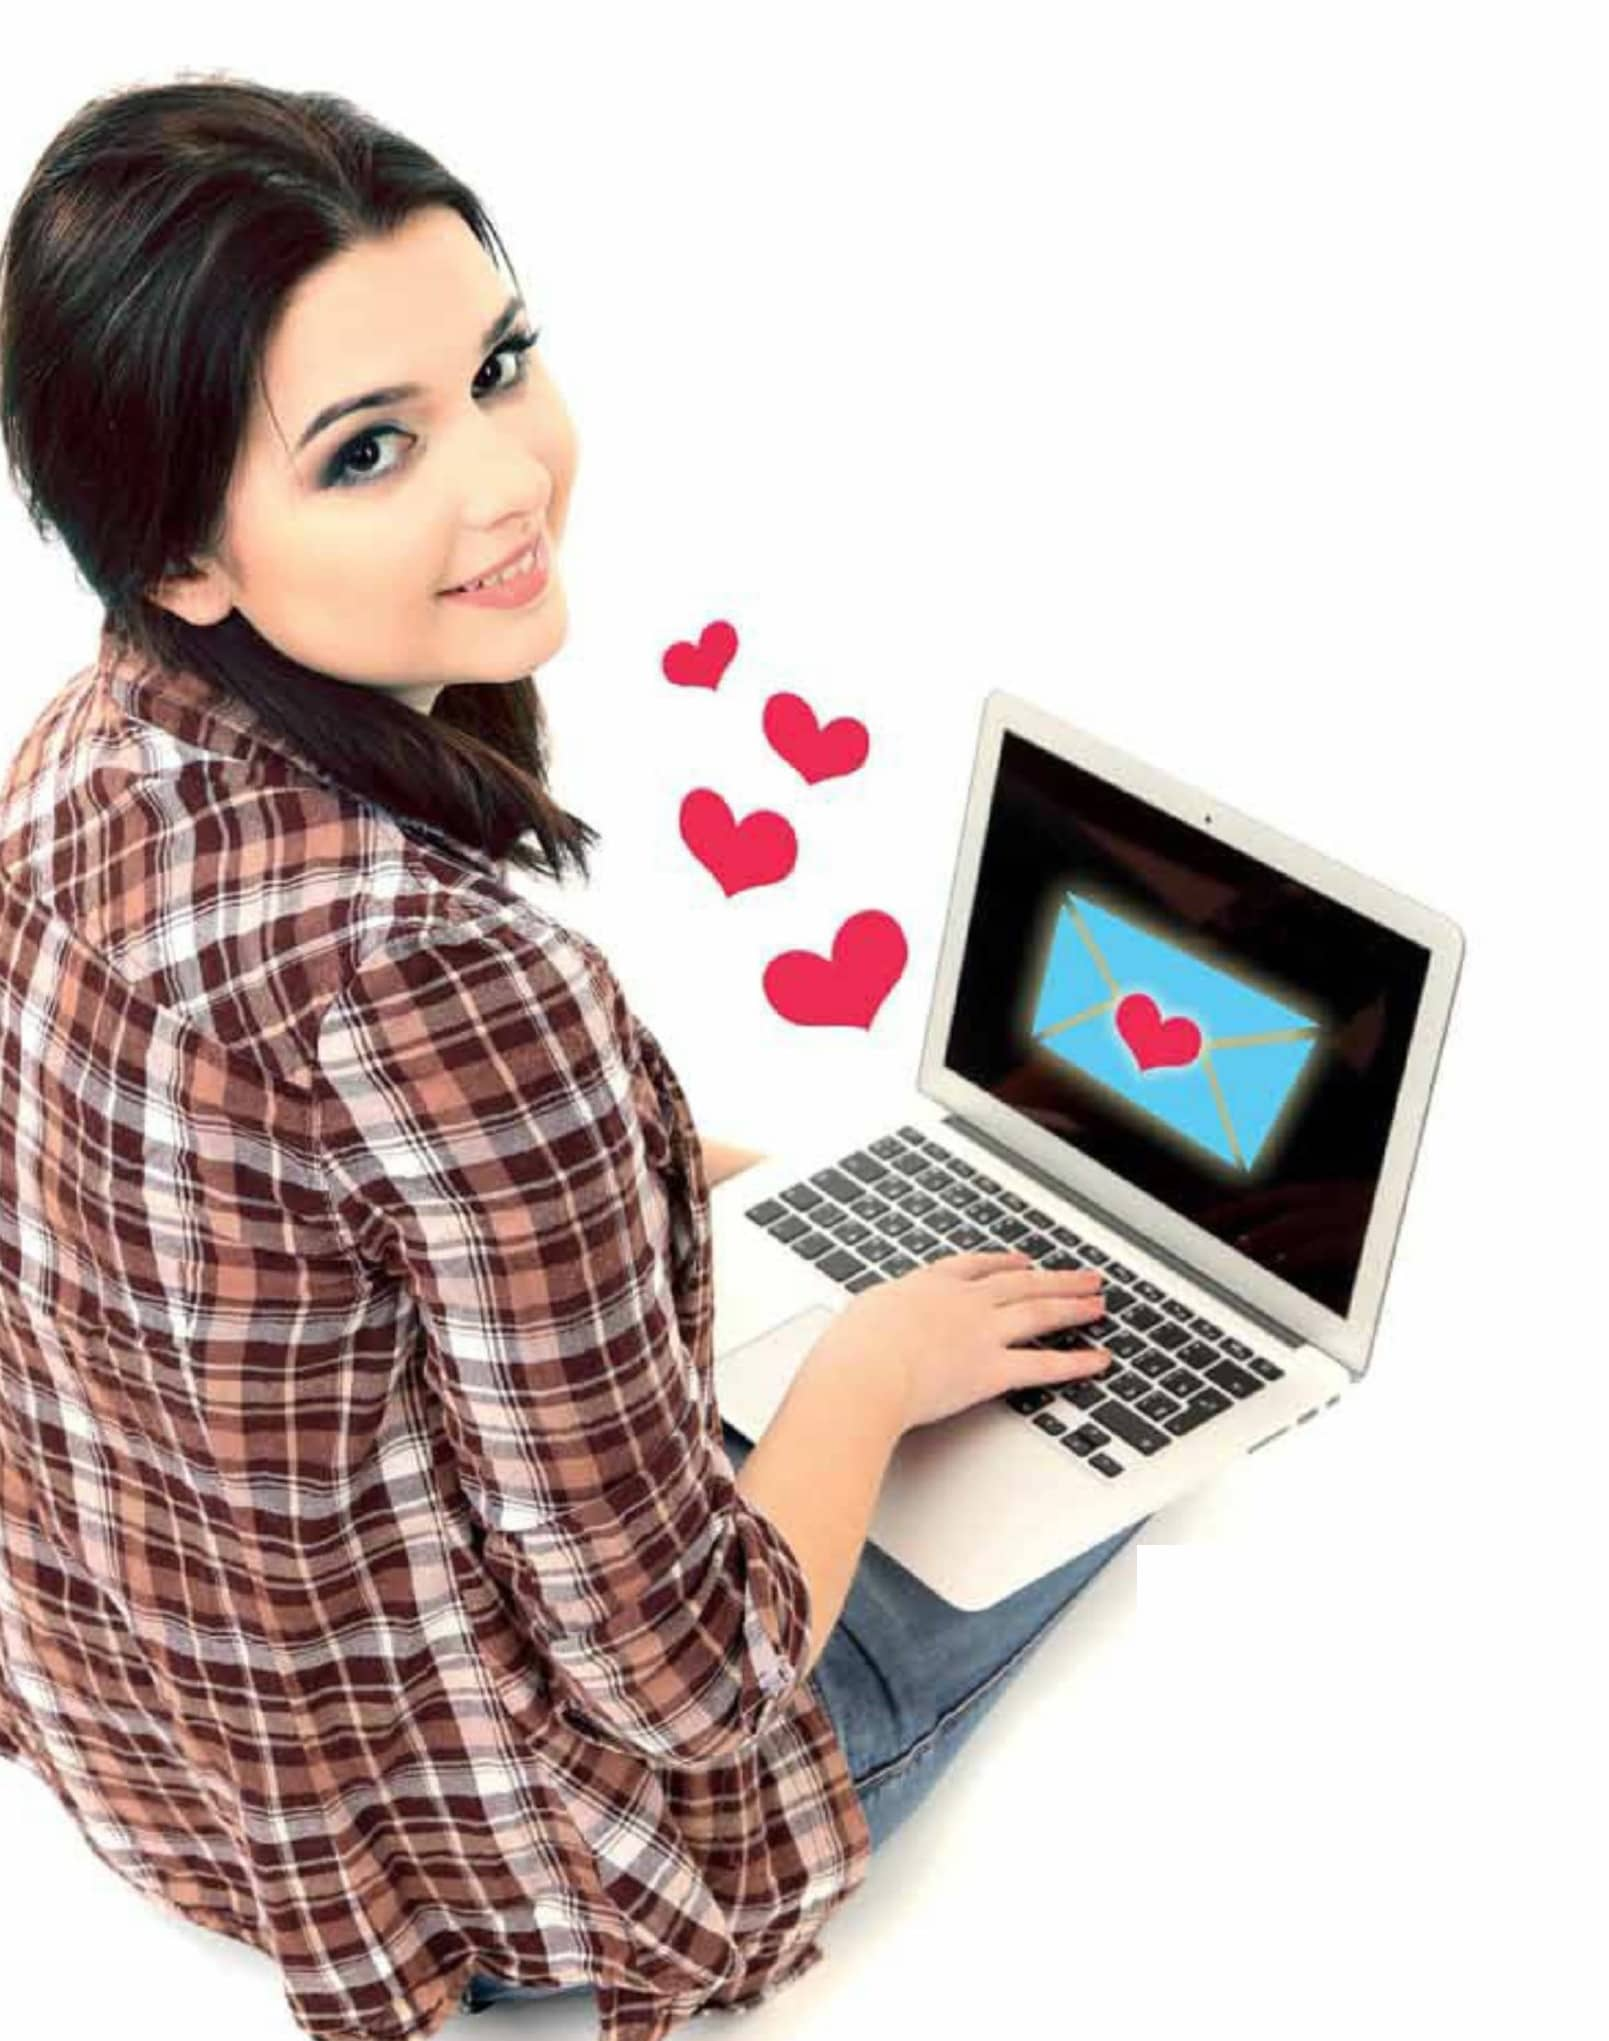 How To Safely Catch The Bug Of Online Dating